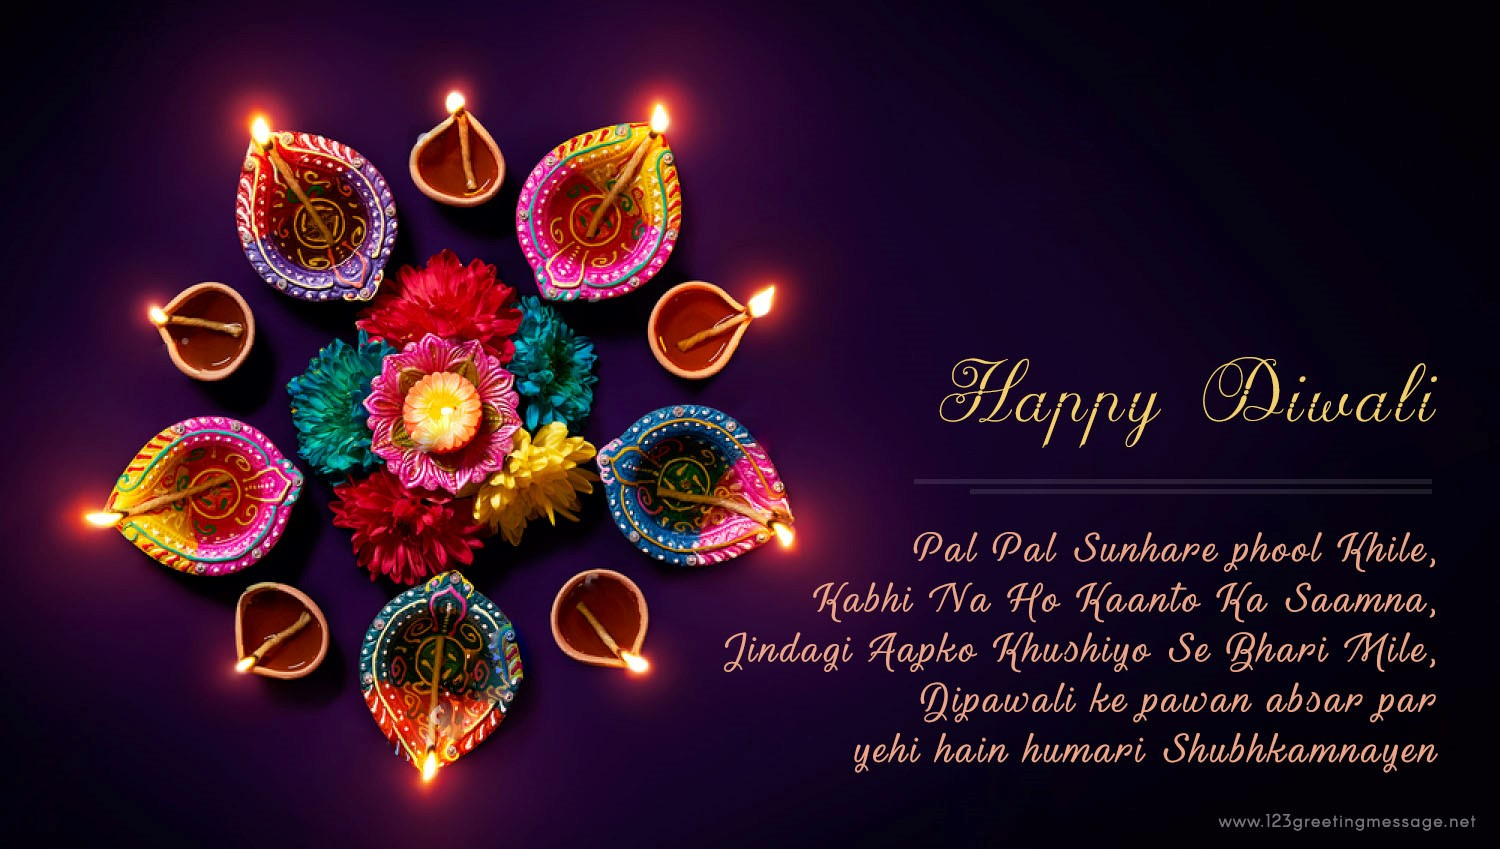 happy diwali images download free